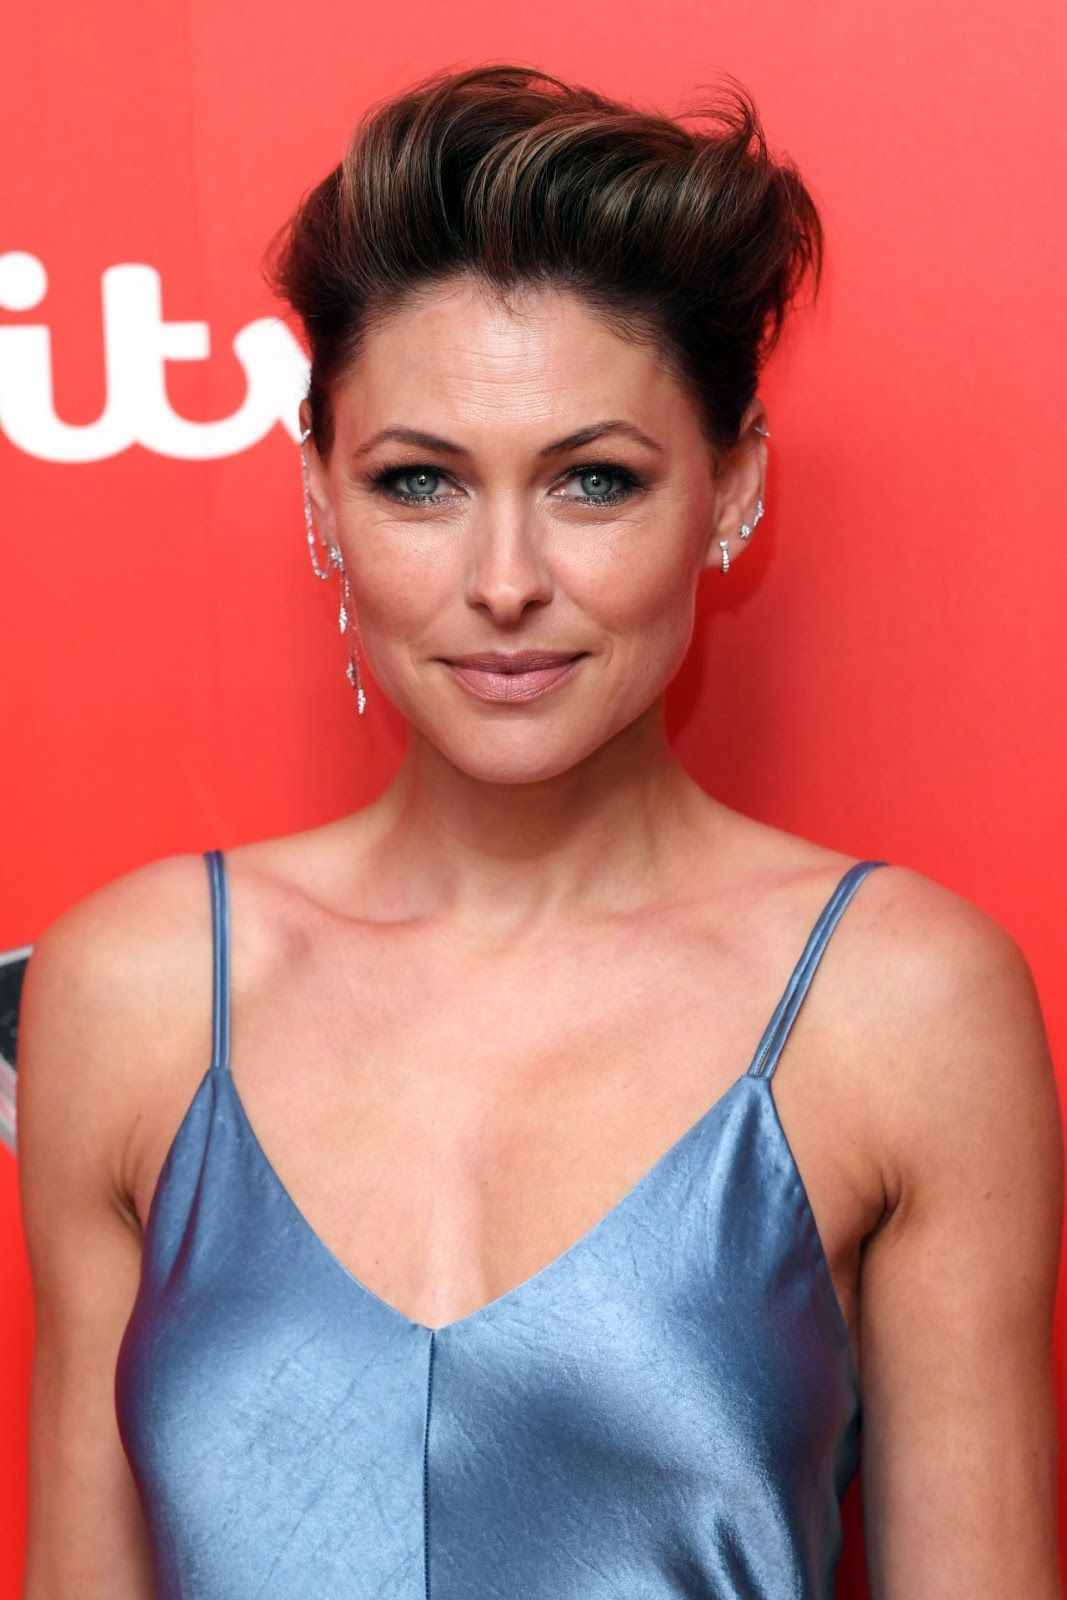 Hacked Emma Willis nude photos 2019